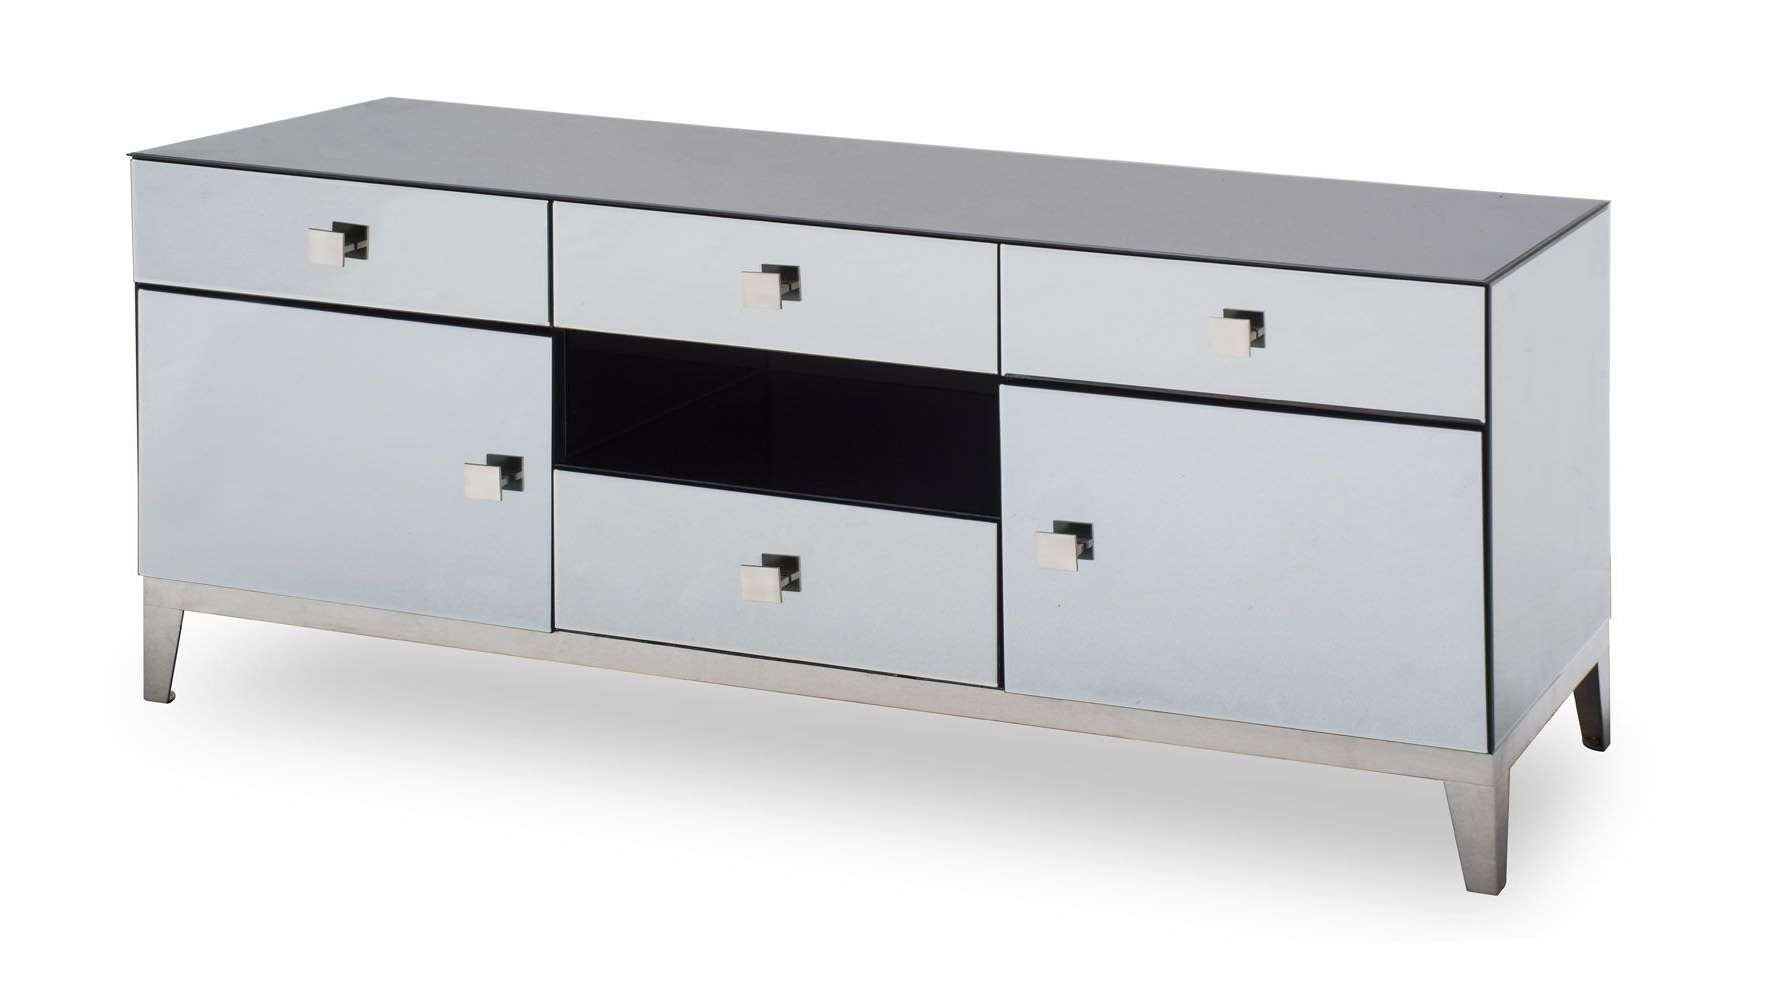 Modern Grey Mirrored Glass Berlin Tv Stand | Zuri Furniture Pertaining To Glass Tv Cabinets (View 14 of 20)